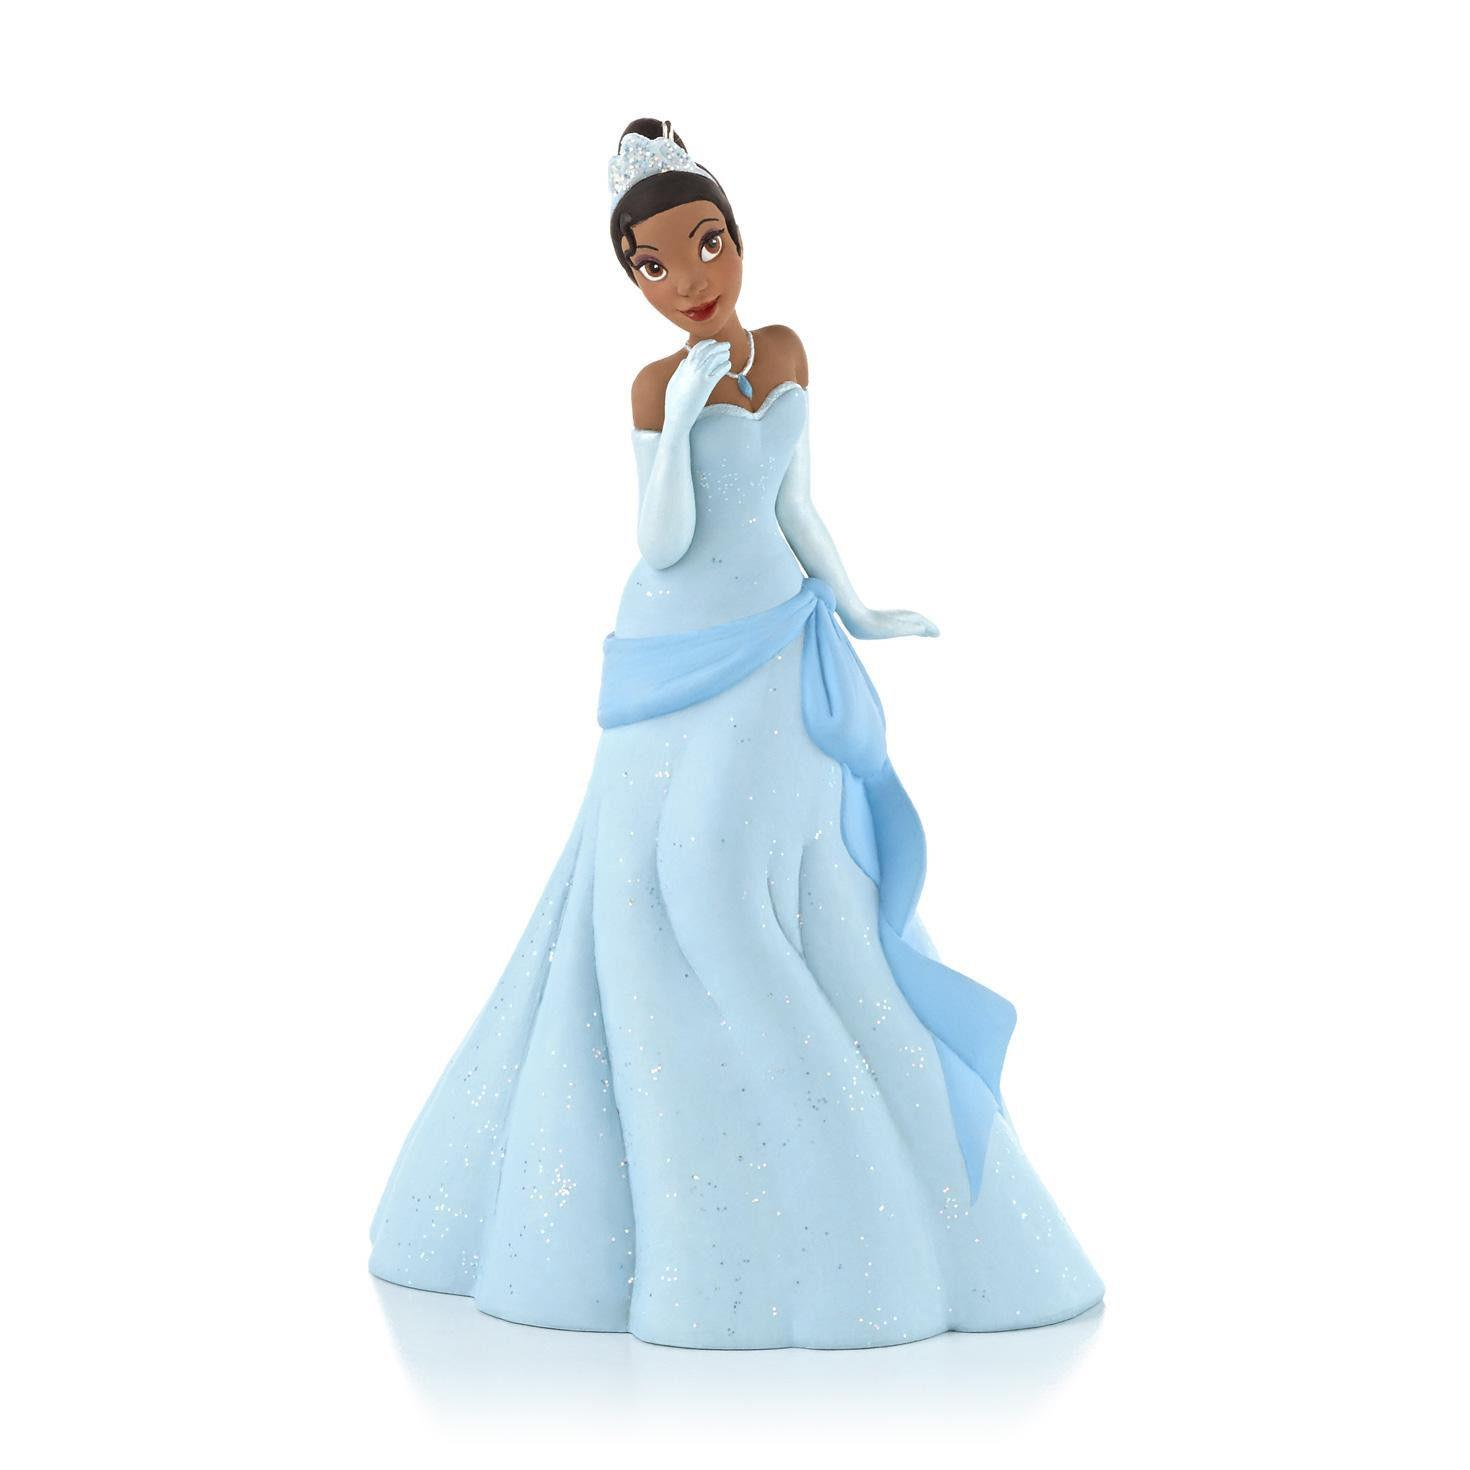 Princess Tiana Dress: Hallmark Ornament 2013 Tiana's Party Dress